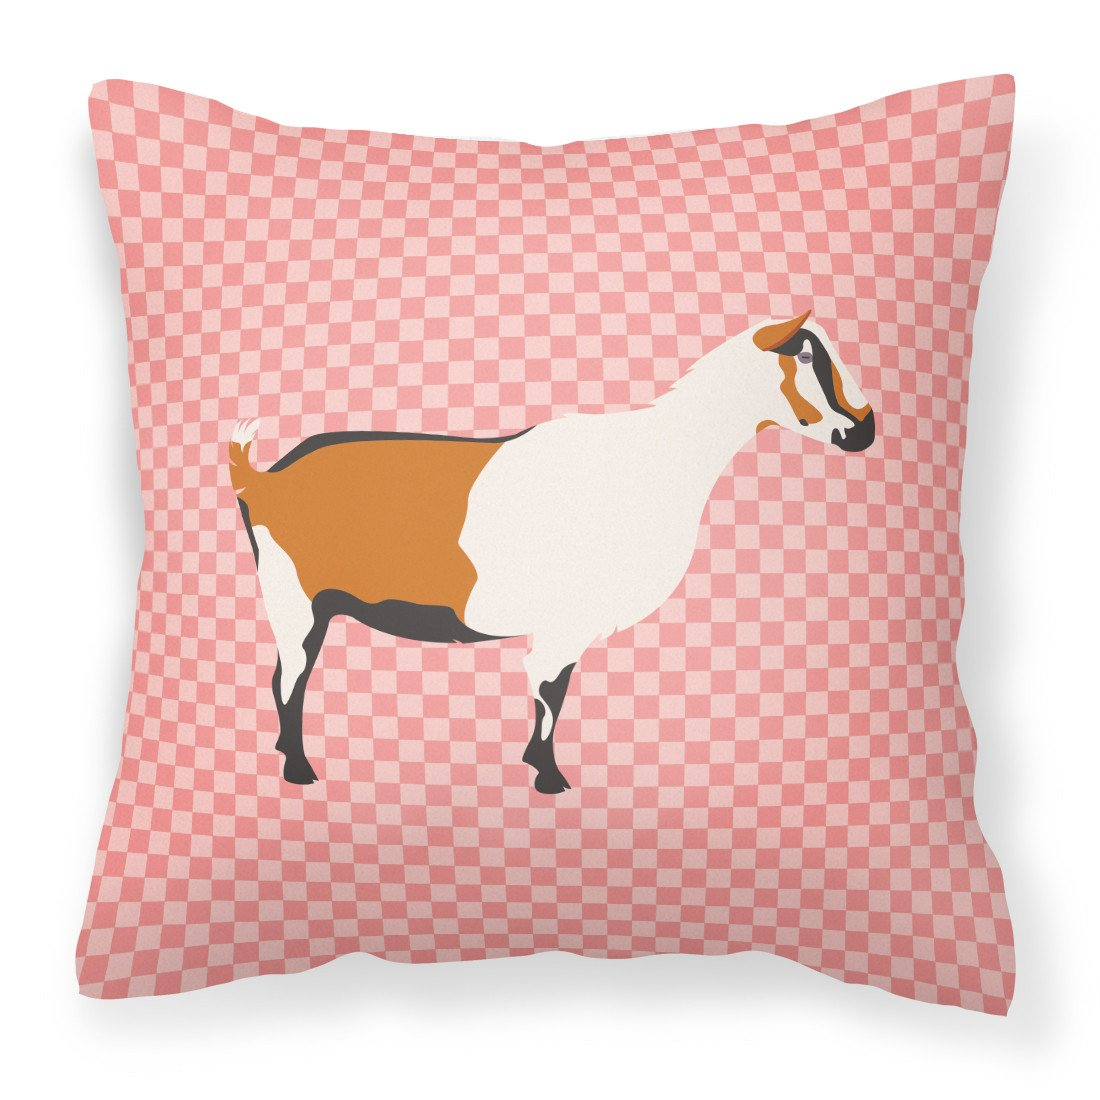 Alpine Goat Pink Check Fabric Decorative Pillow BB7880PW1818 by Caroline's Treasures